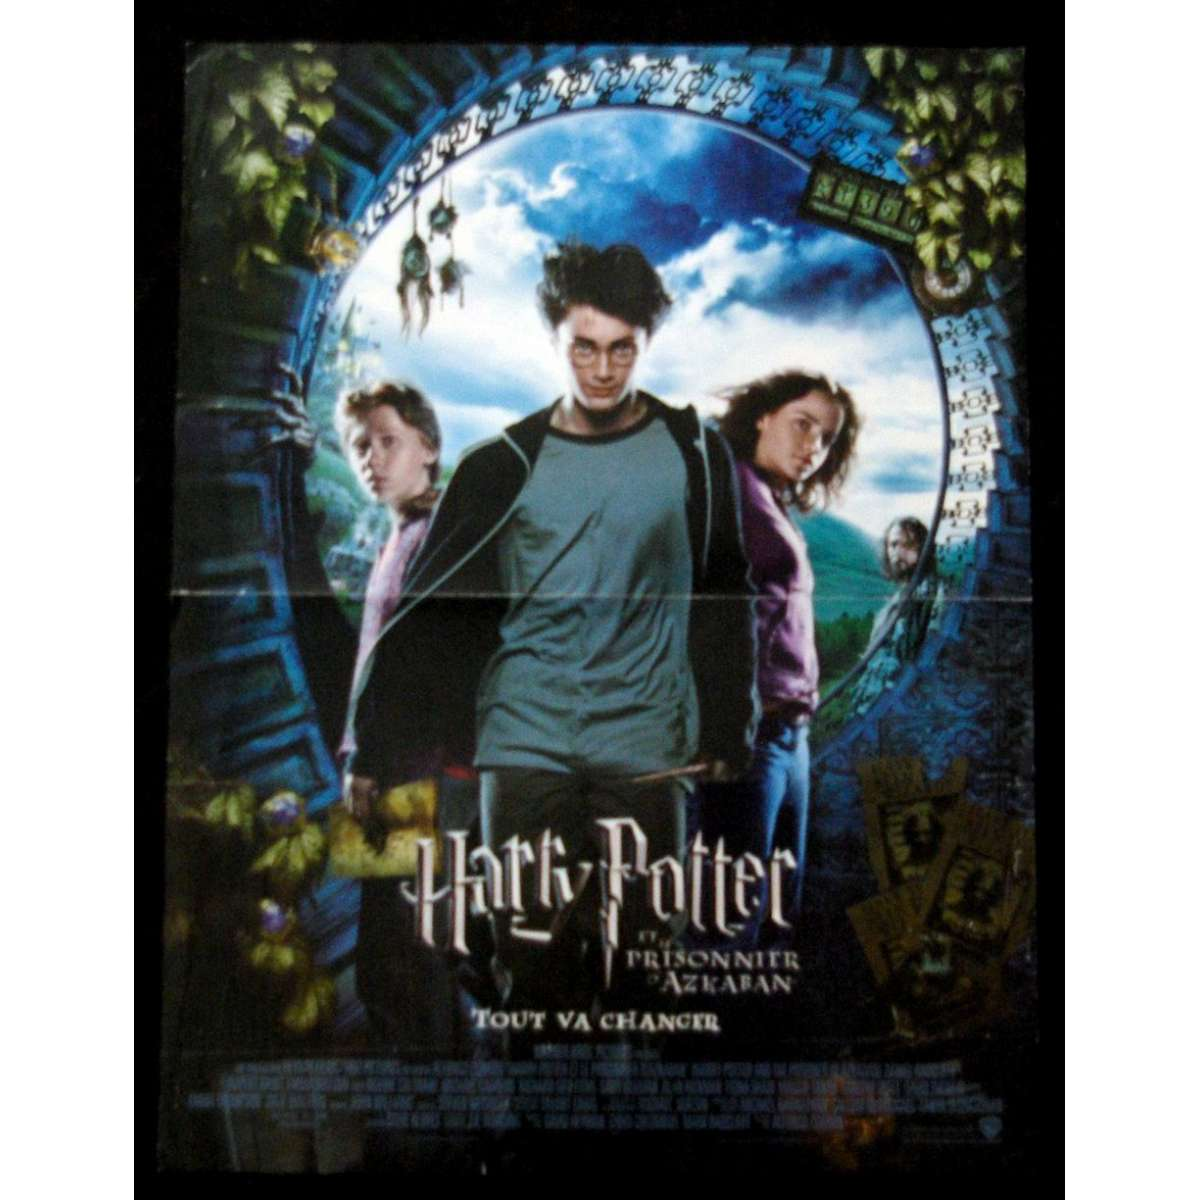 Harry potter and the prisonnier of azkaban french movie poster 15x21 gary oldman alan rickman for Poster et affiche